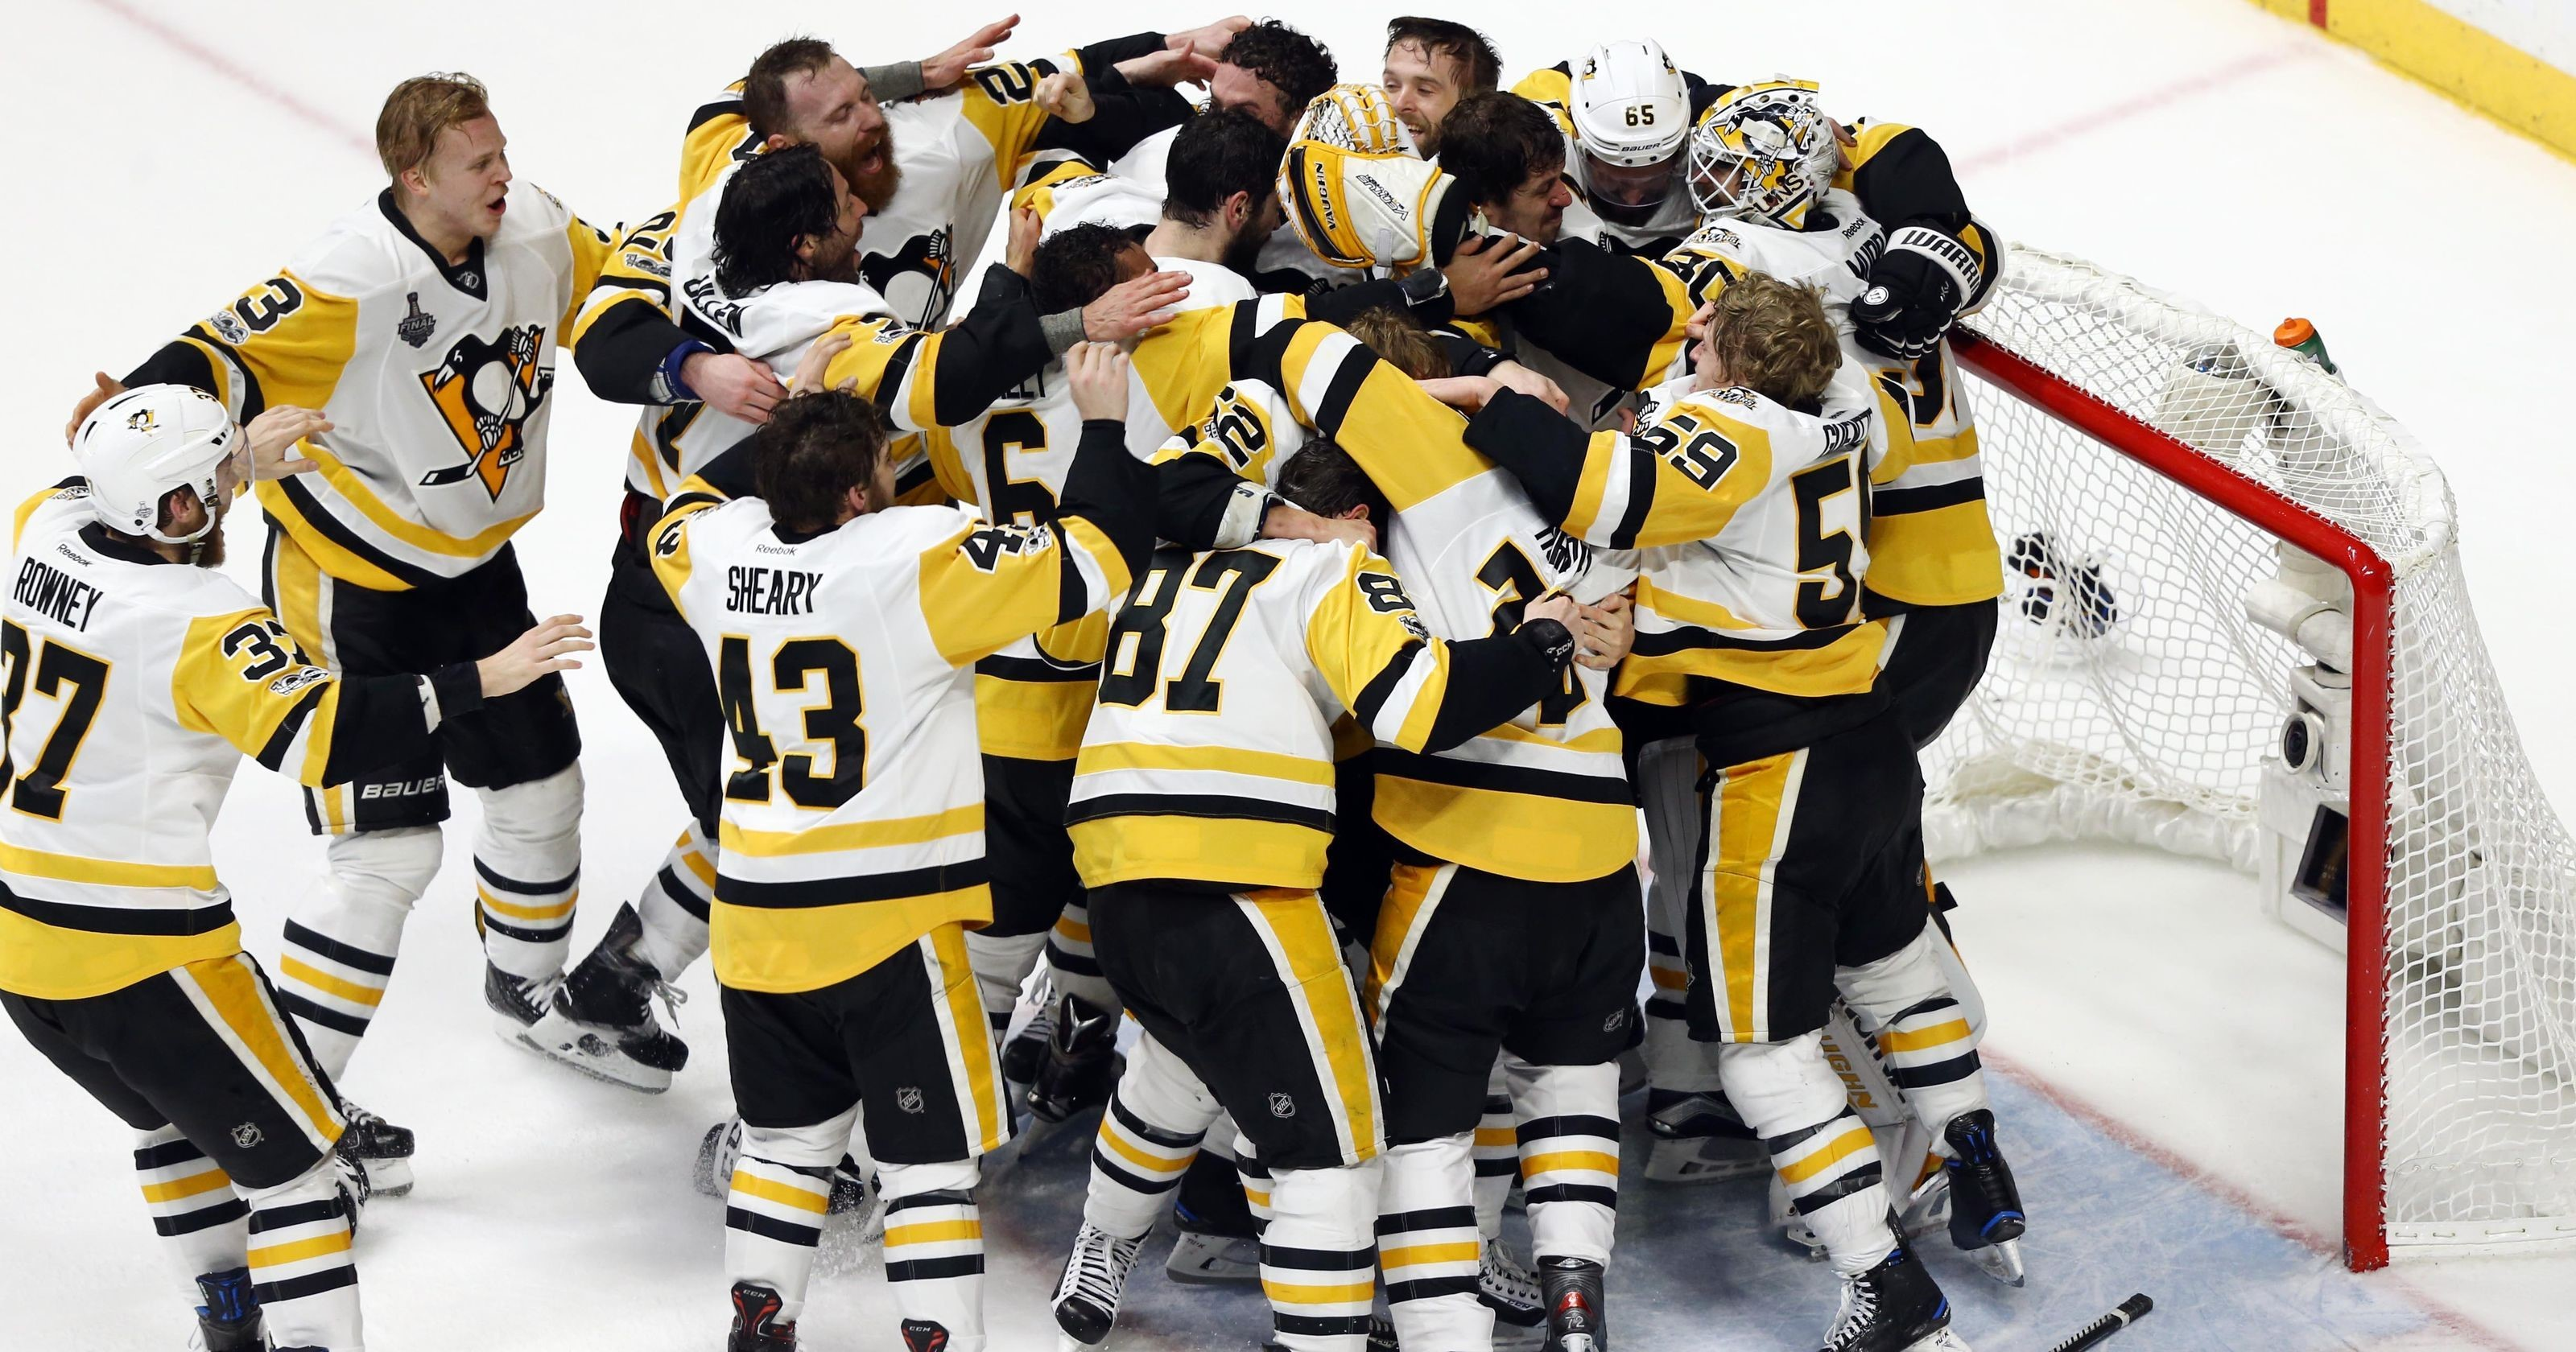 wholesale dealer 73a8e 726f9 Pittsburgh Penguins 2018 NHL Stanley Cup Playoffs ...